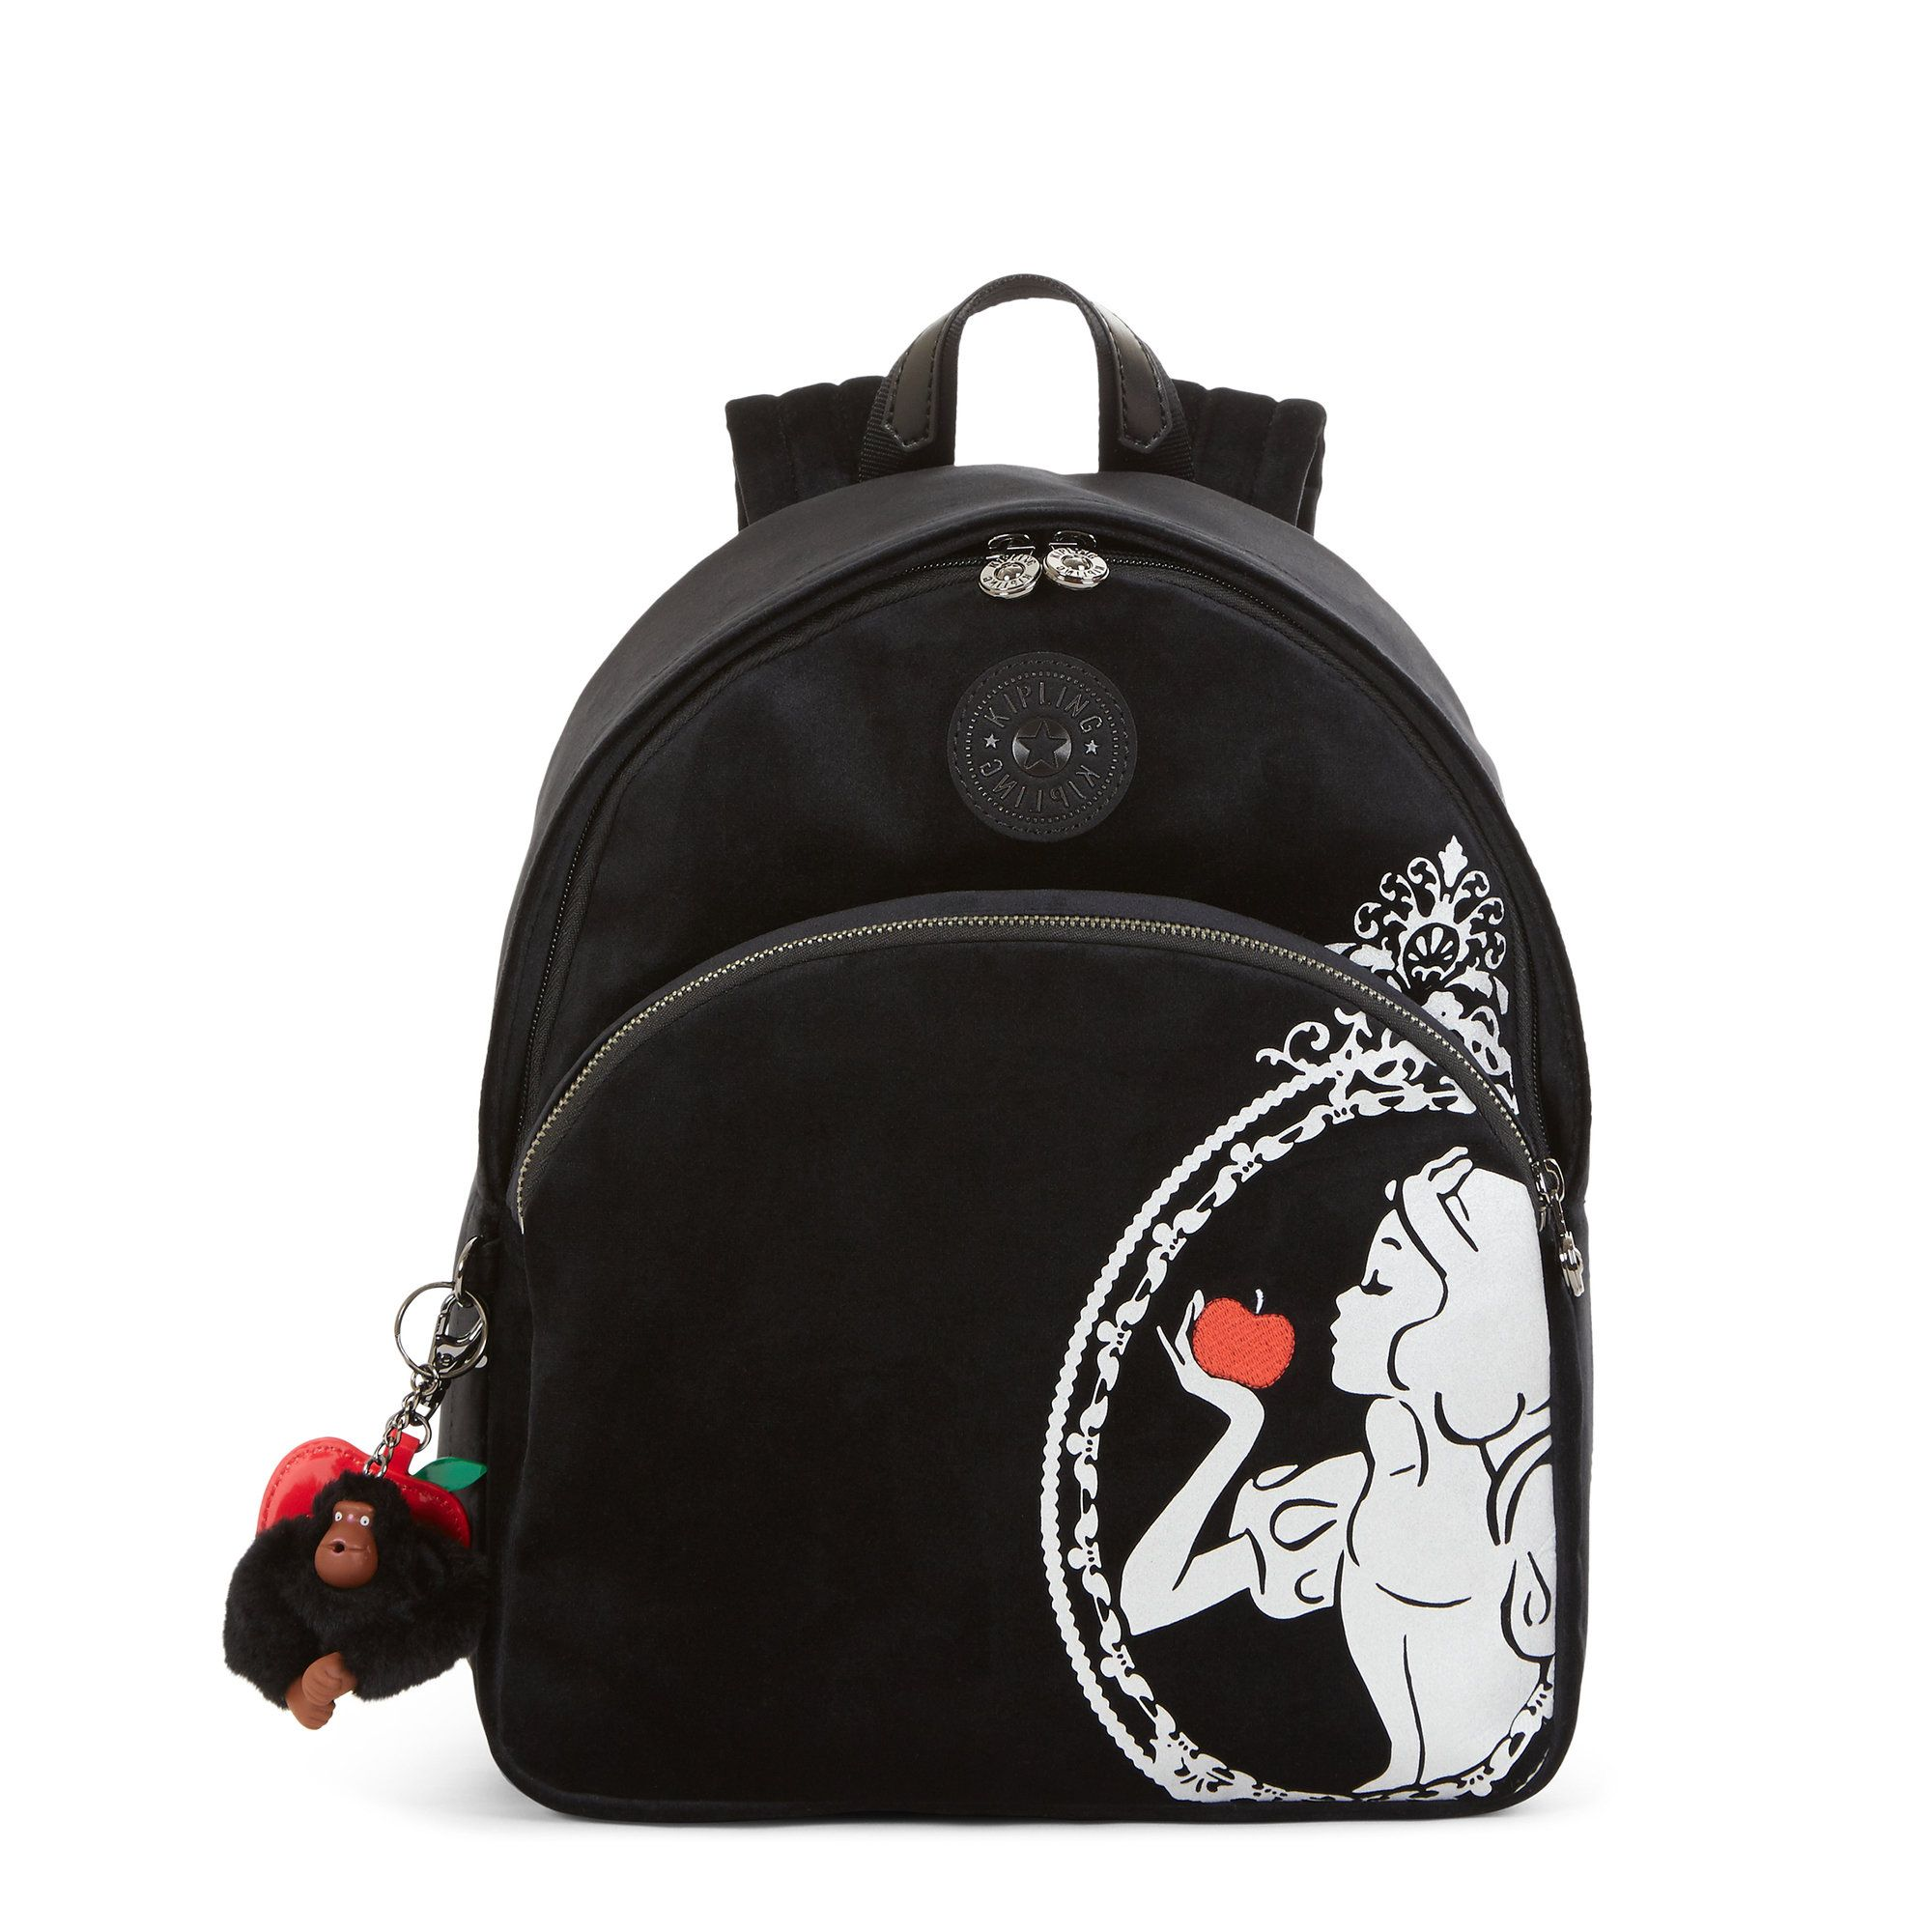 6aecb4d7267 There are also super cool backpacks. Like this monochromatic one ...